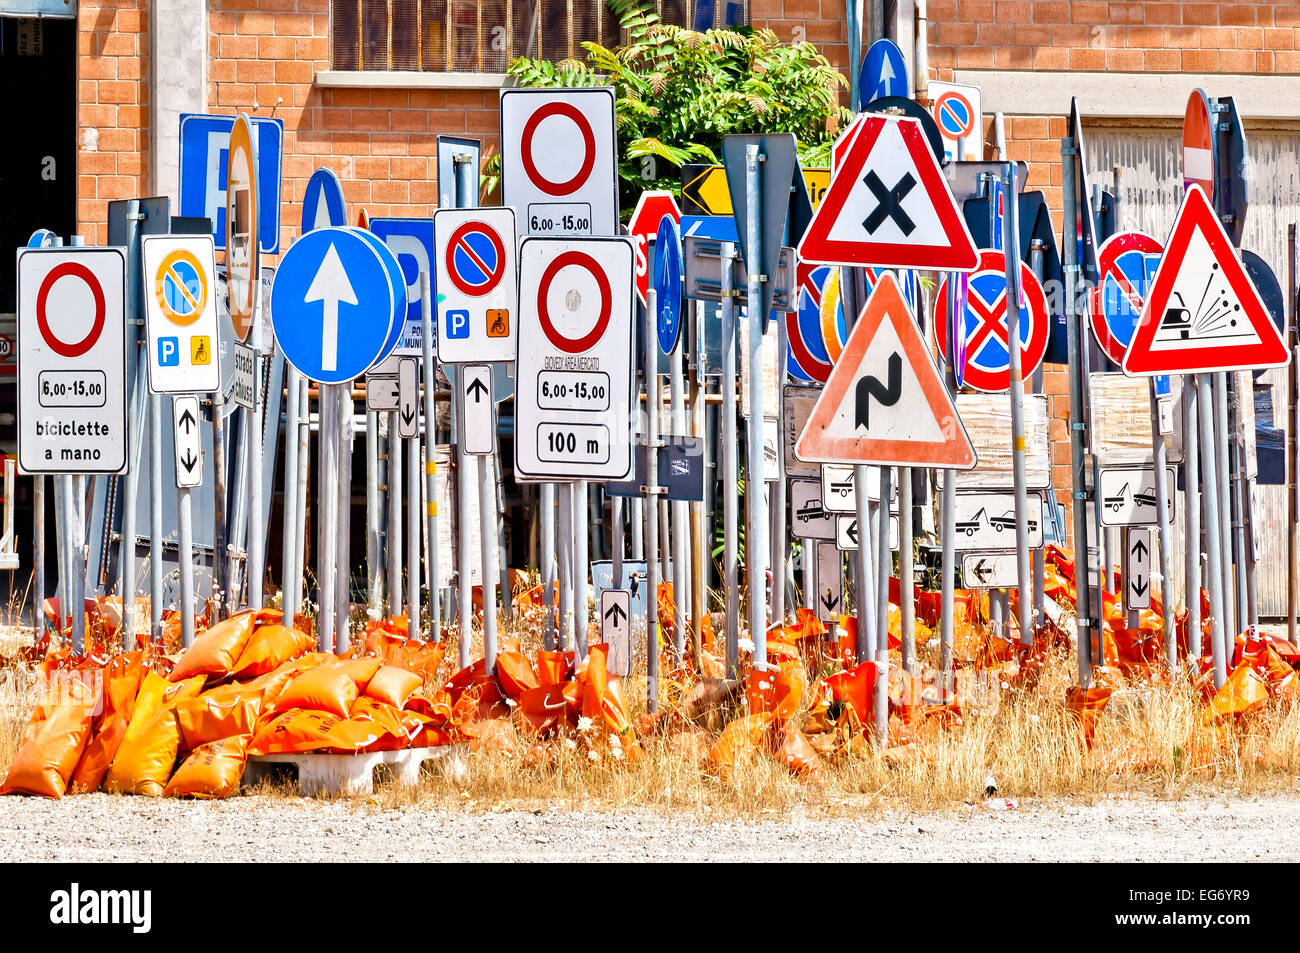 storage area of italian road signs - Stock Image